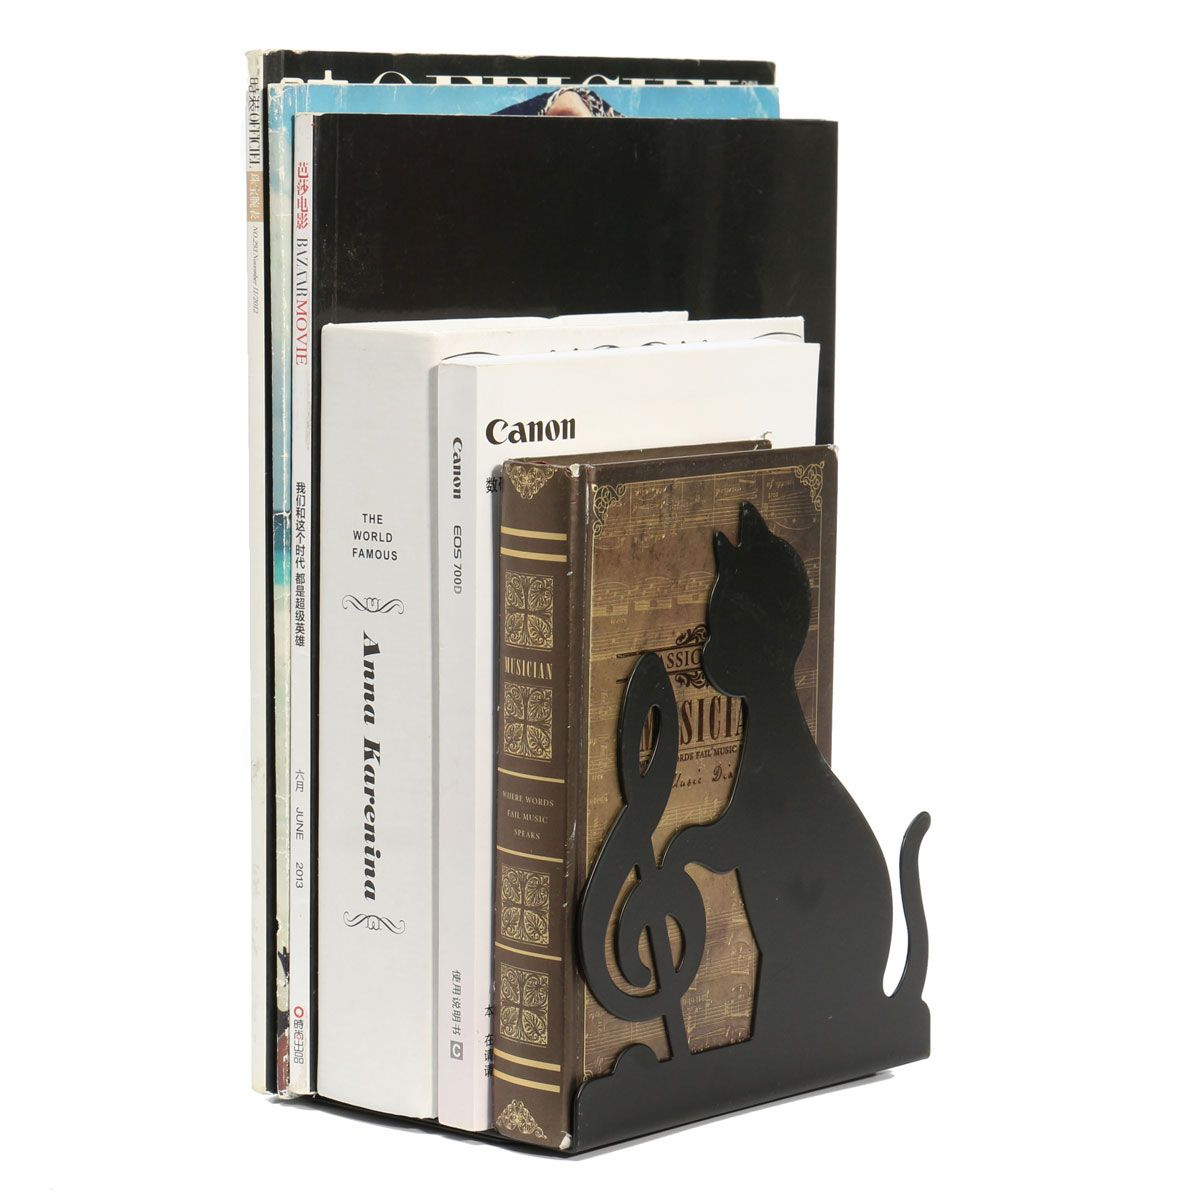 1 Pair High Quality Desk Accessories Organizer Black Cat Playing Metal Book End Bookend Holder Bookstand